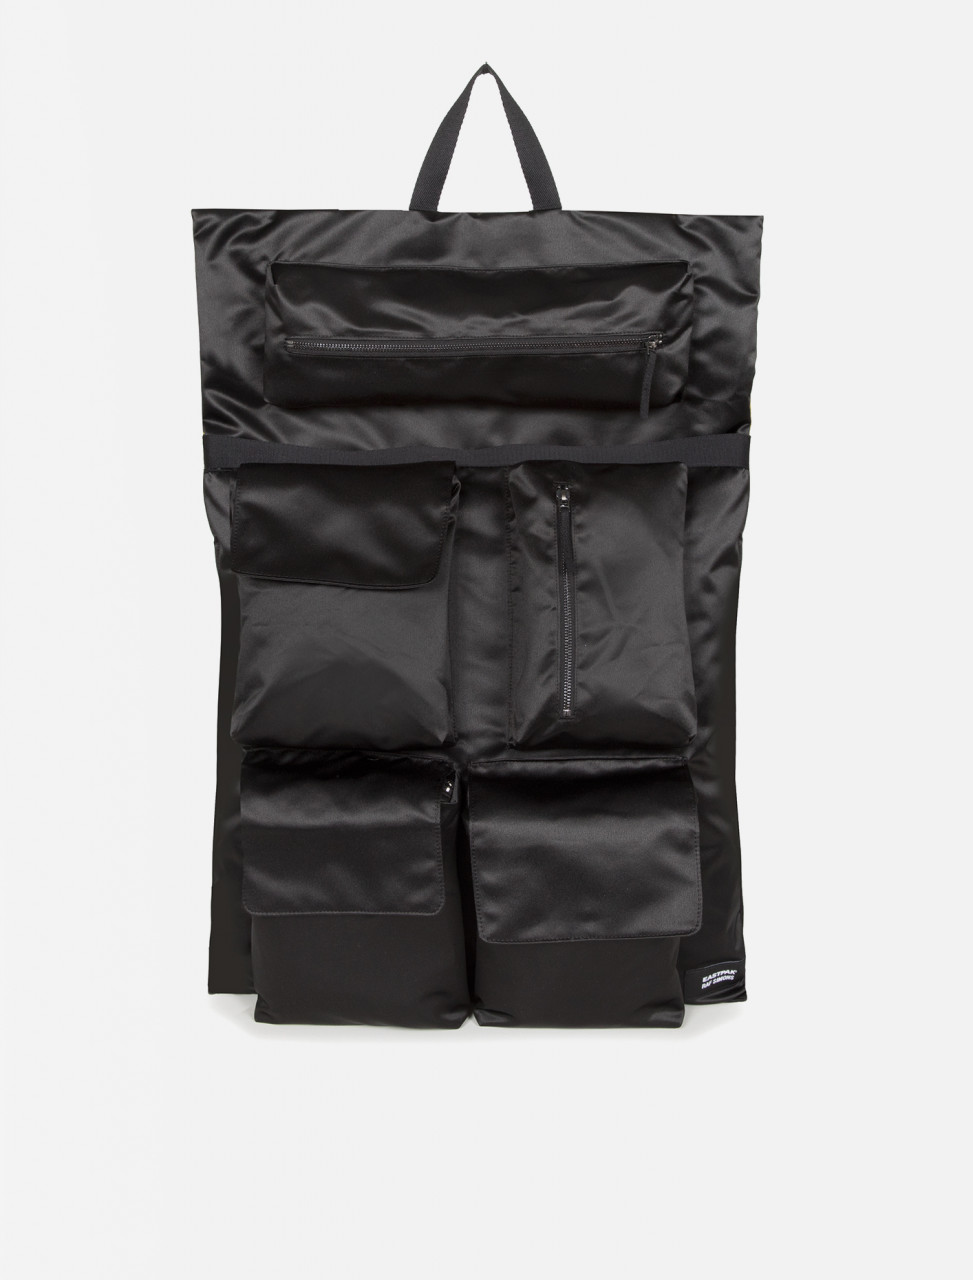 RS POSTER BACKPACK